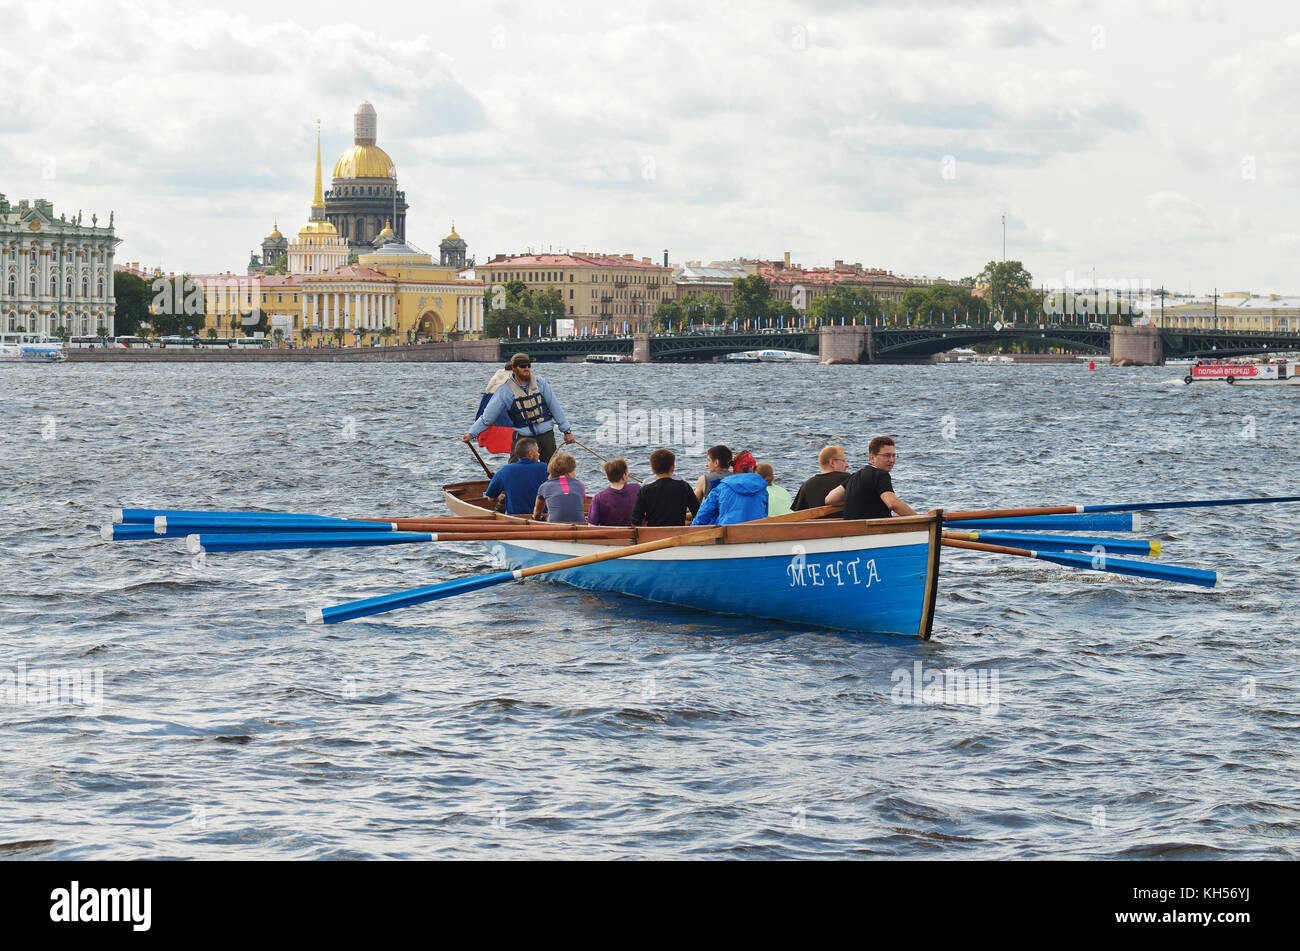 13.08.2016.Russia.Saint-Petersburg.Team of rowers in the boat swam to shore. - Stock Image